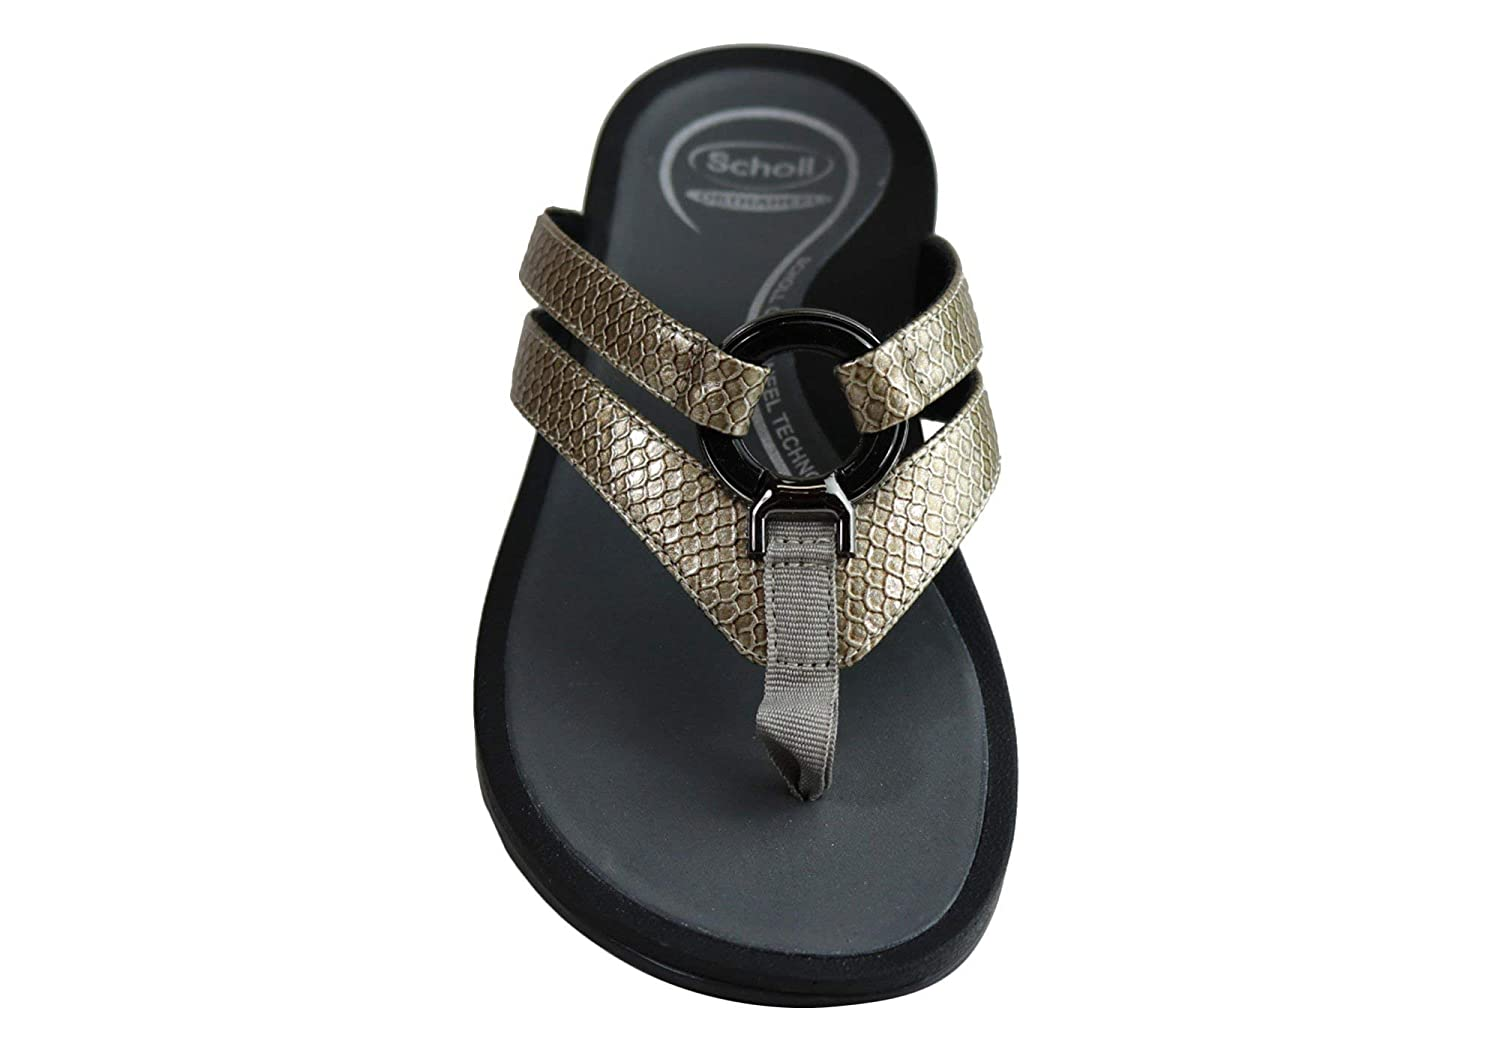 a7f2547d6bc2e Scholl Orthaheel Tonga II Womens Supportive Comfortable Thongs Sandals  Black  Amazon.com.au  Fashion